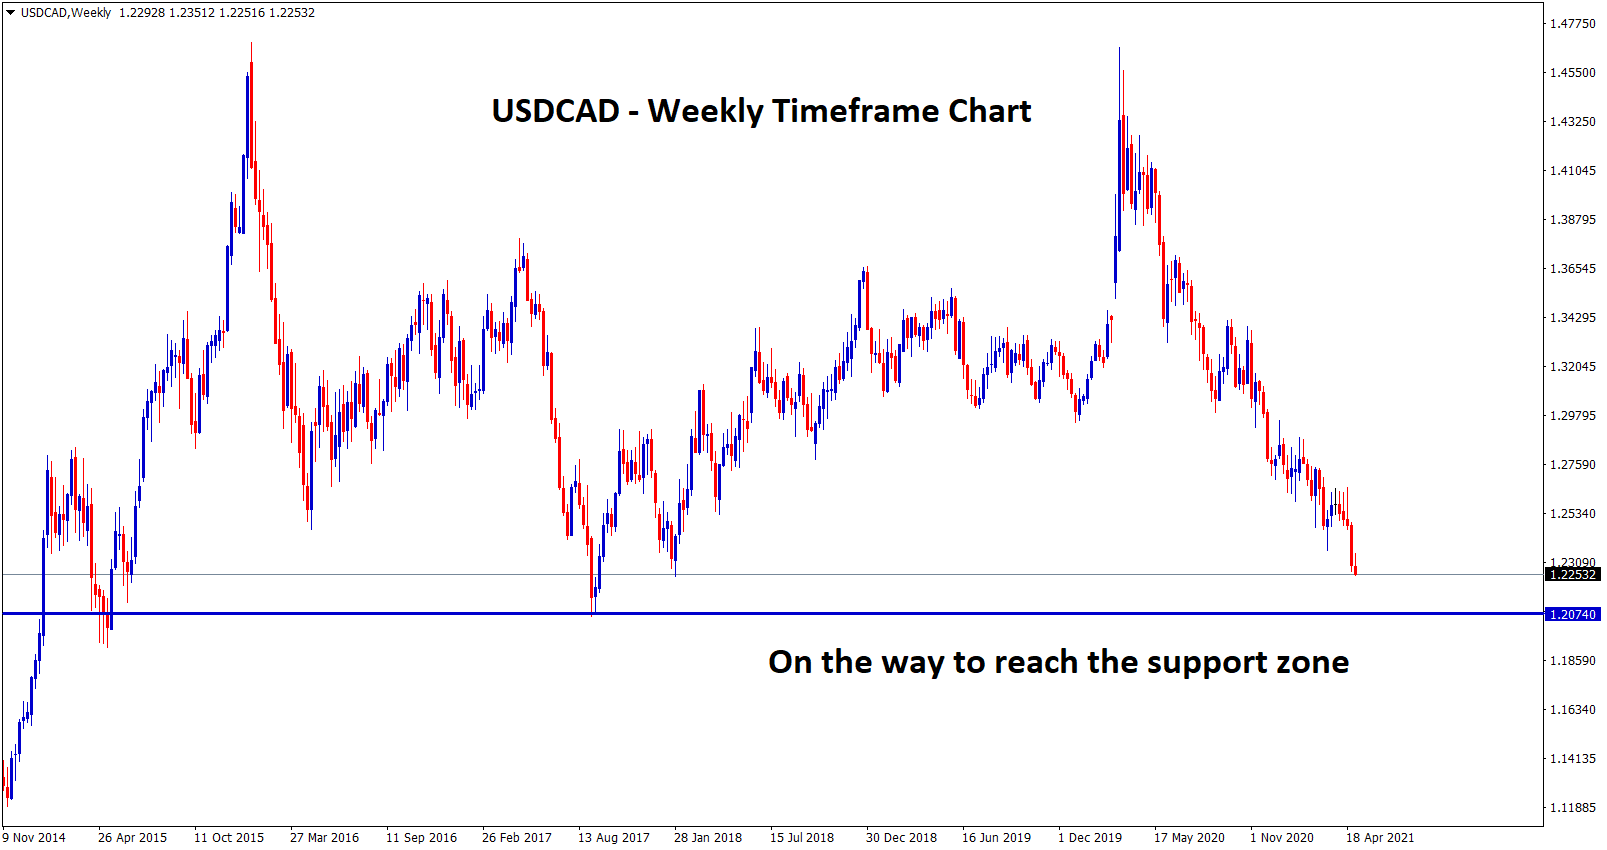 USDCAD on the way to next support 1.20